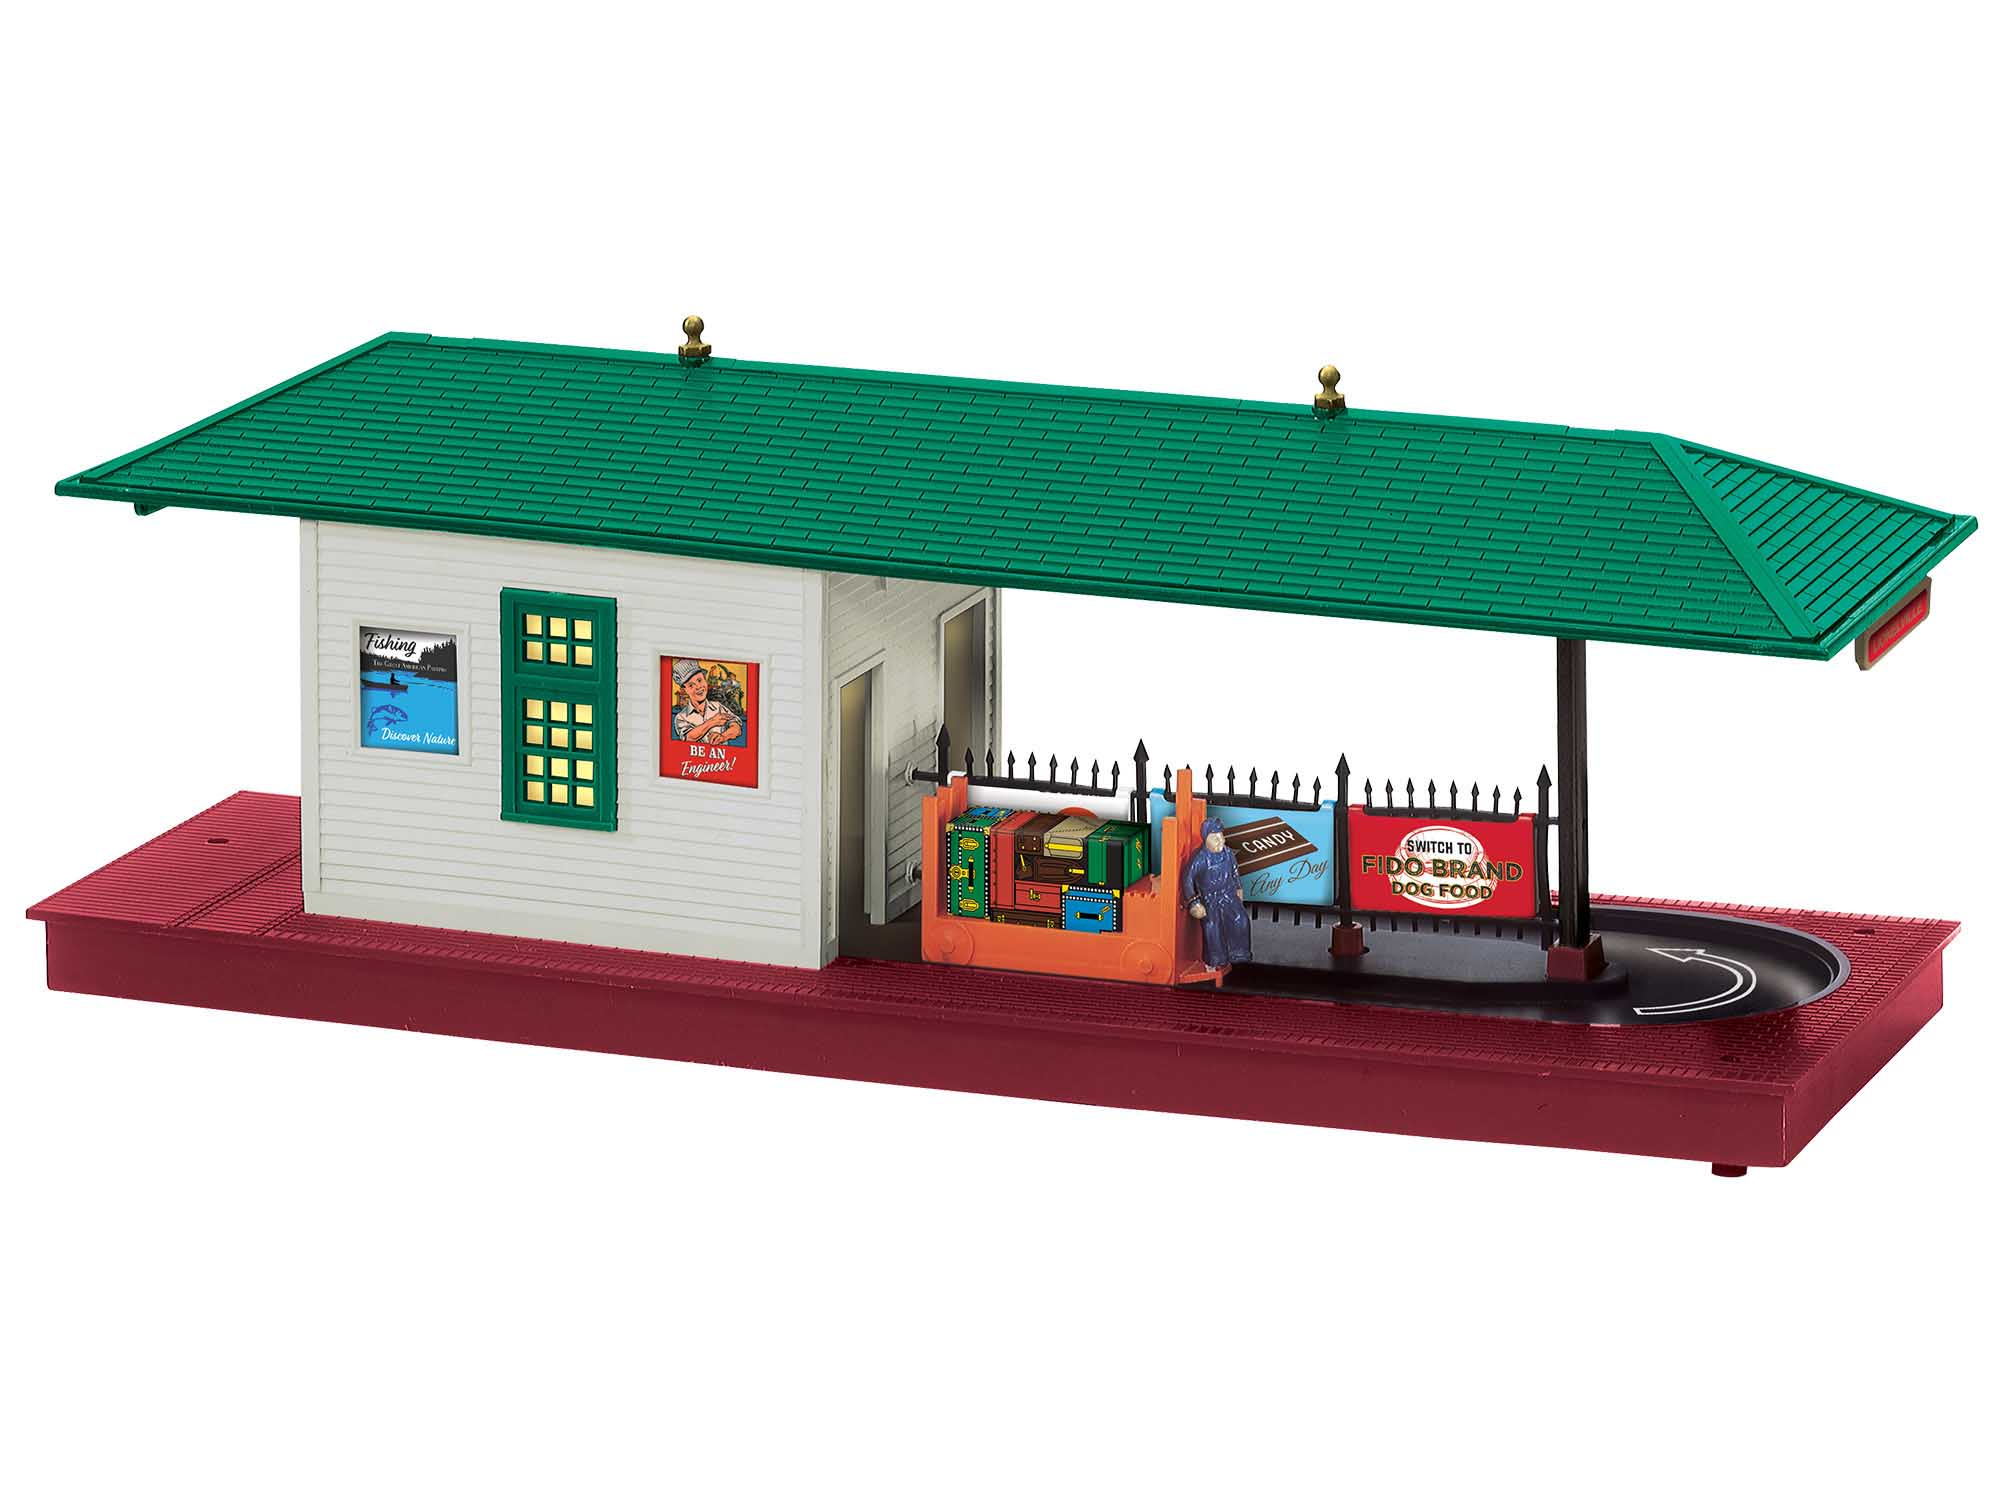 Lionel 2029270 Lionelville Freight Station